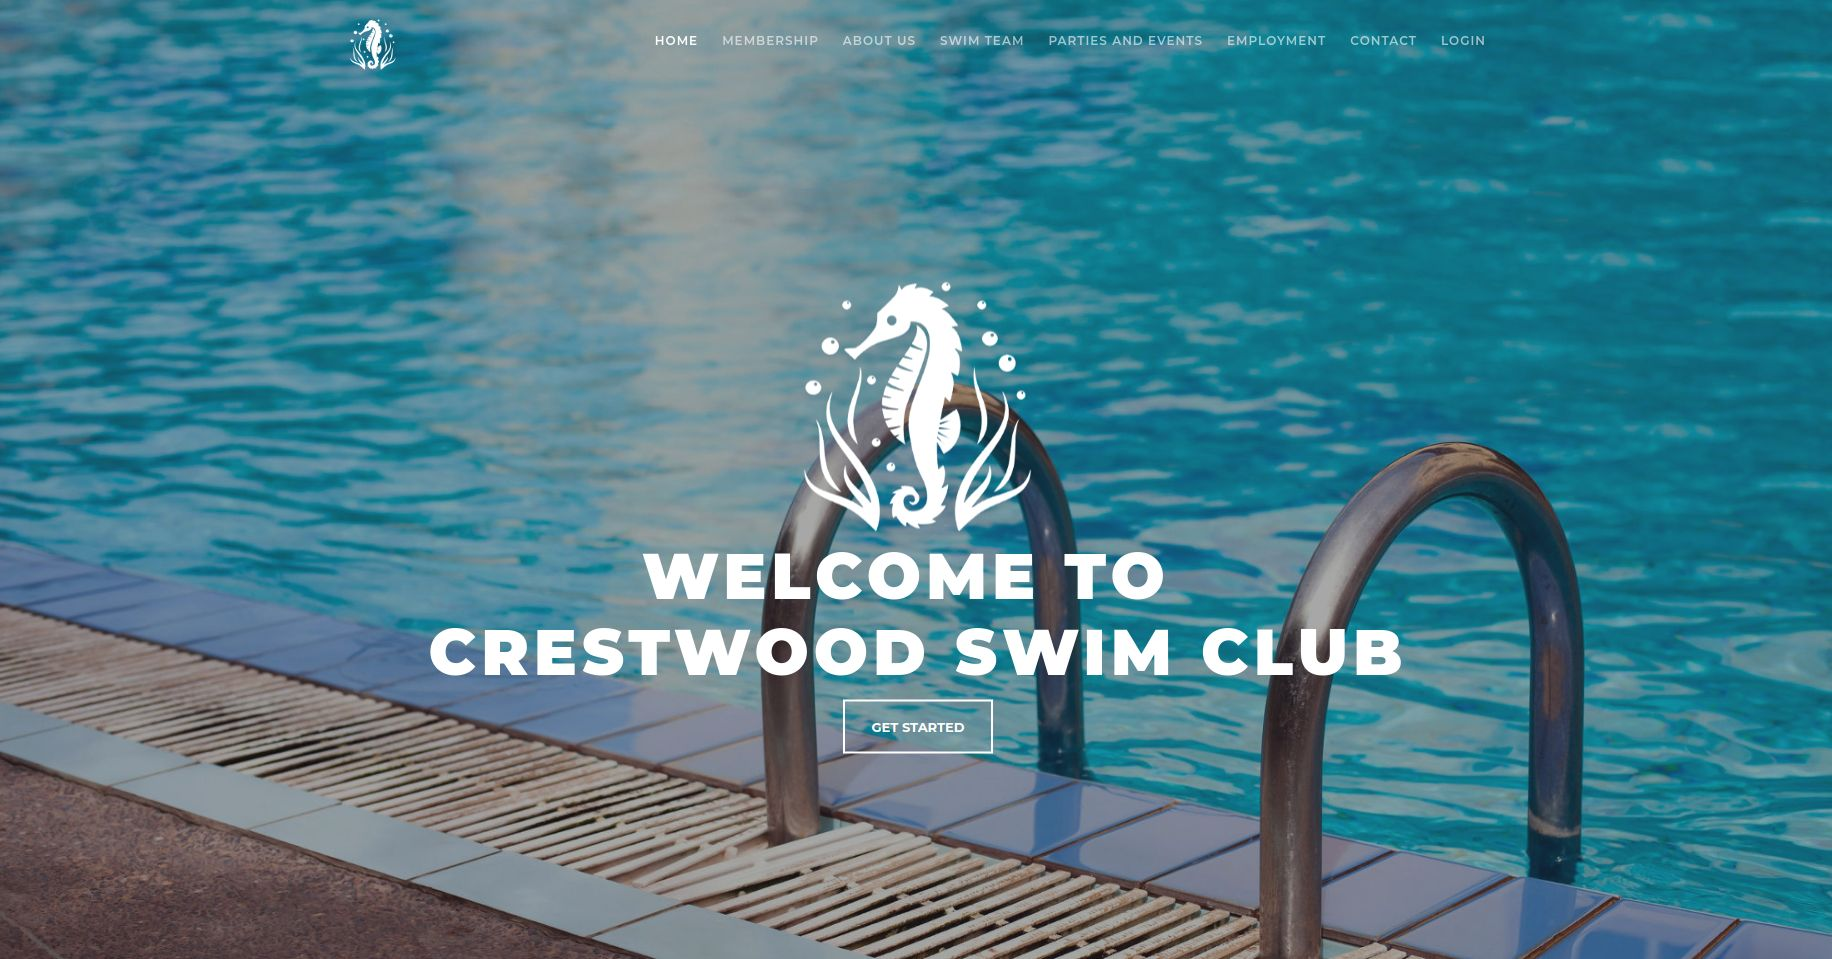 Websites by Daniel Portfolio (Crestwood Swim Club)